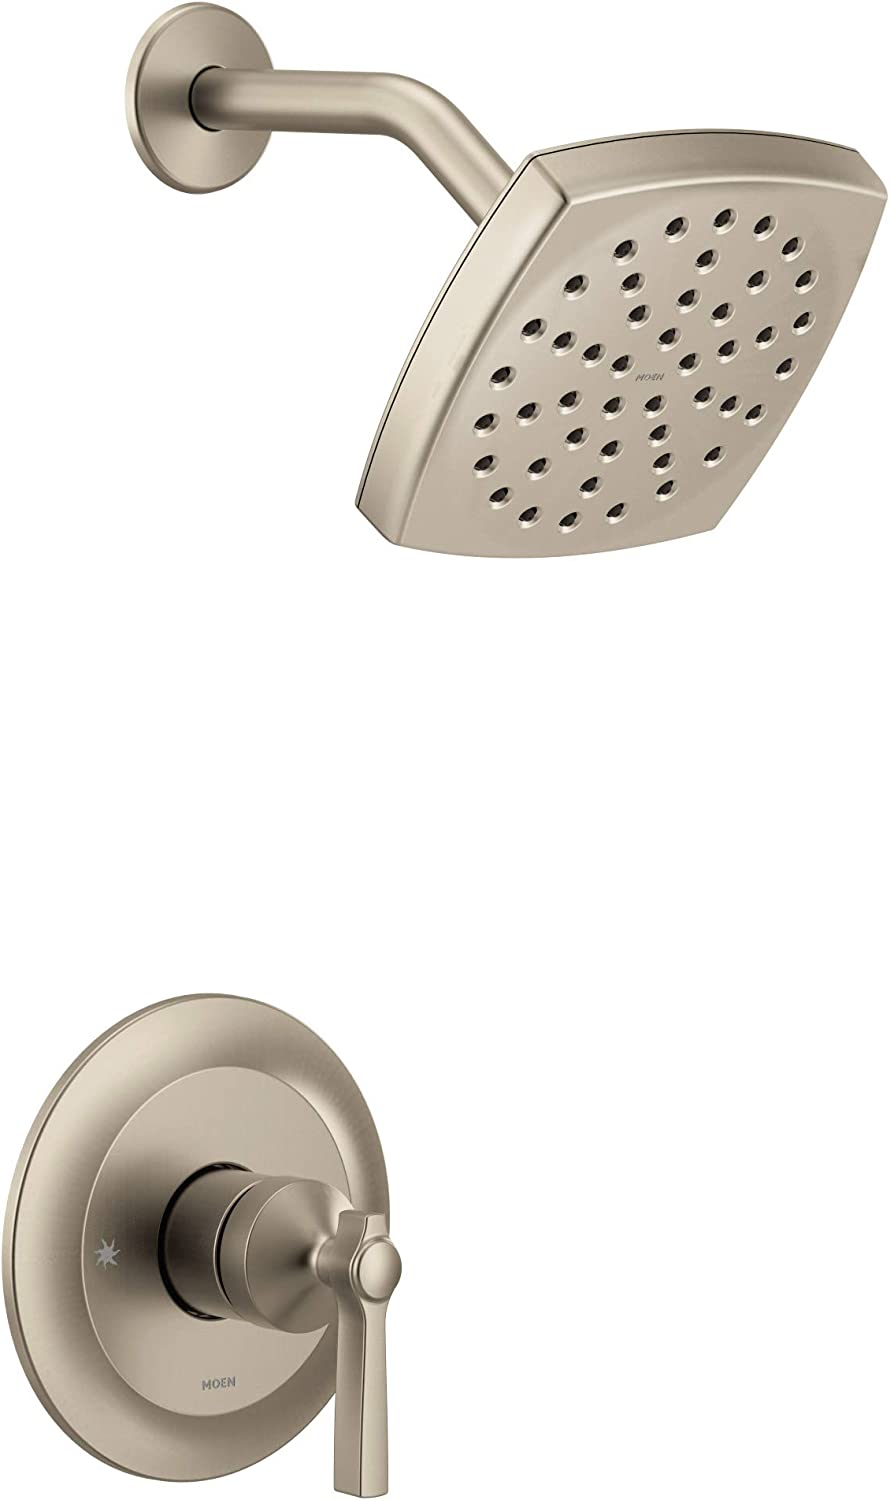 Moen UTS3912BN Flara M-CORE 3-Series Special price V Super beauty product restock quality top Kit 1-Handle Shower Trim